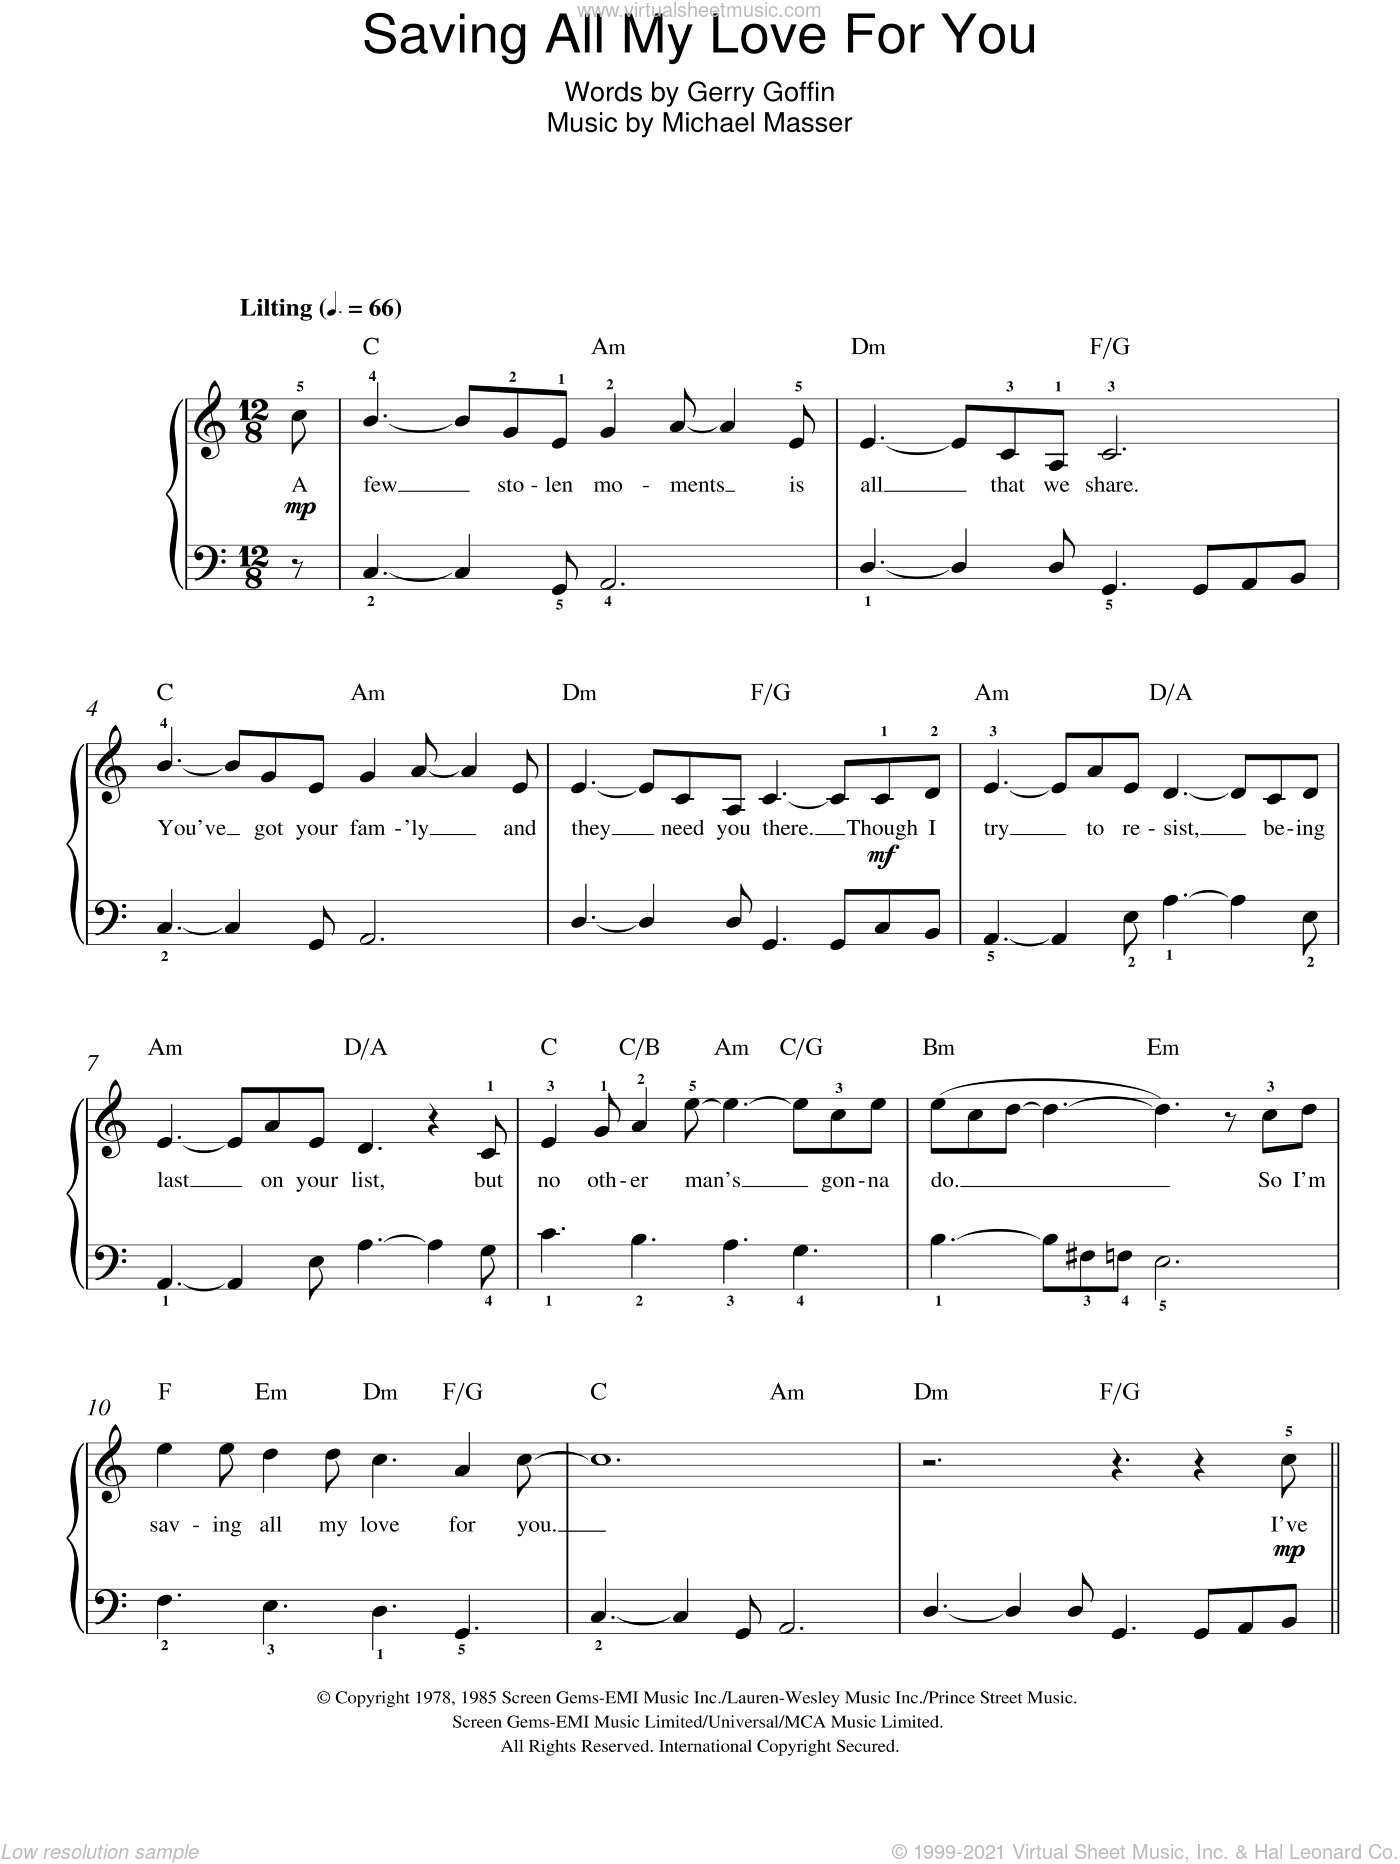 Saving All My Love For You sheet music for piano solo by Whitney Houston, Gerry Goffin and Michael Masser, easy skill level